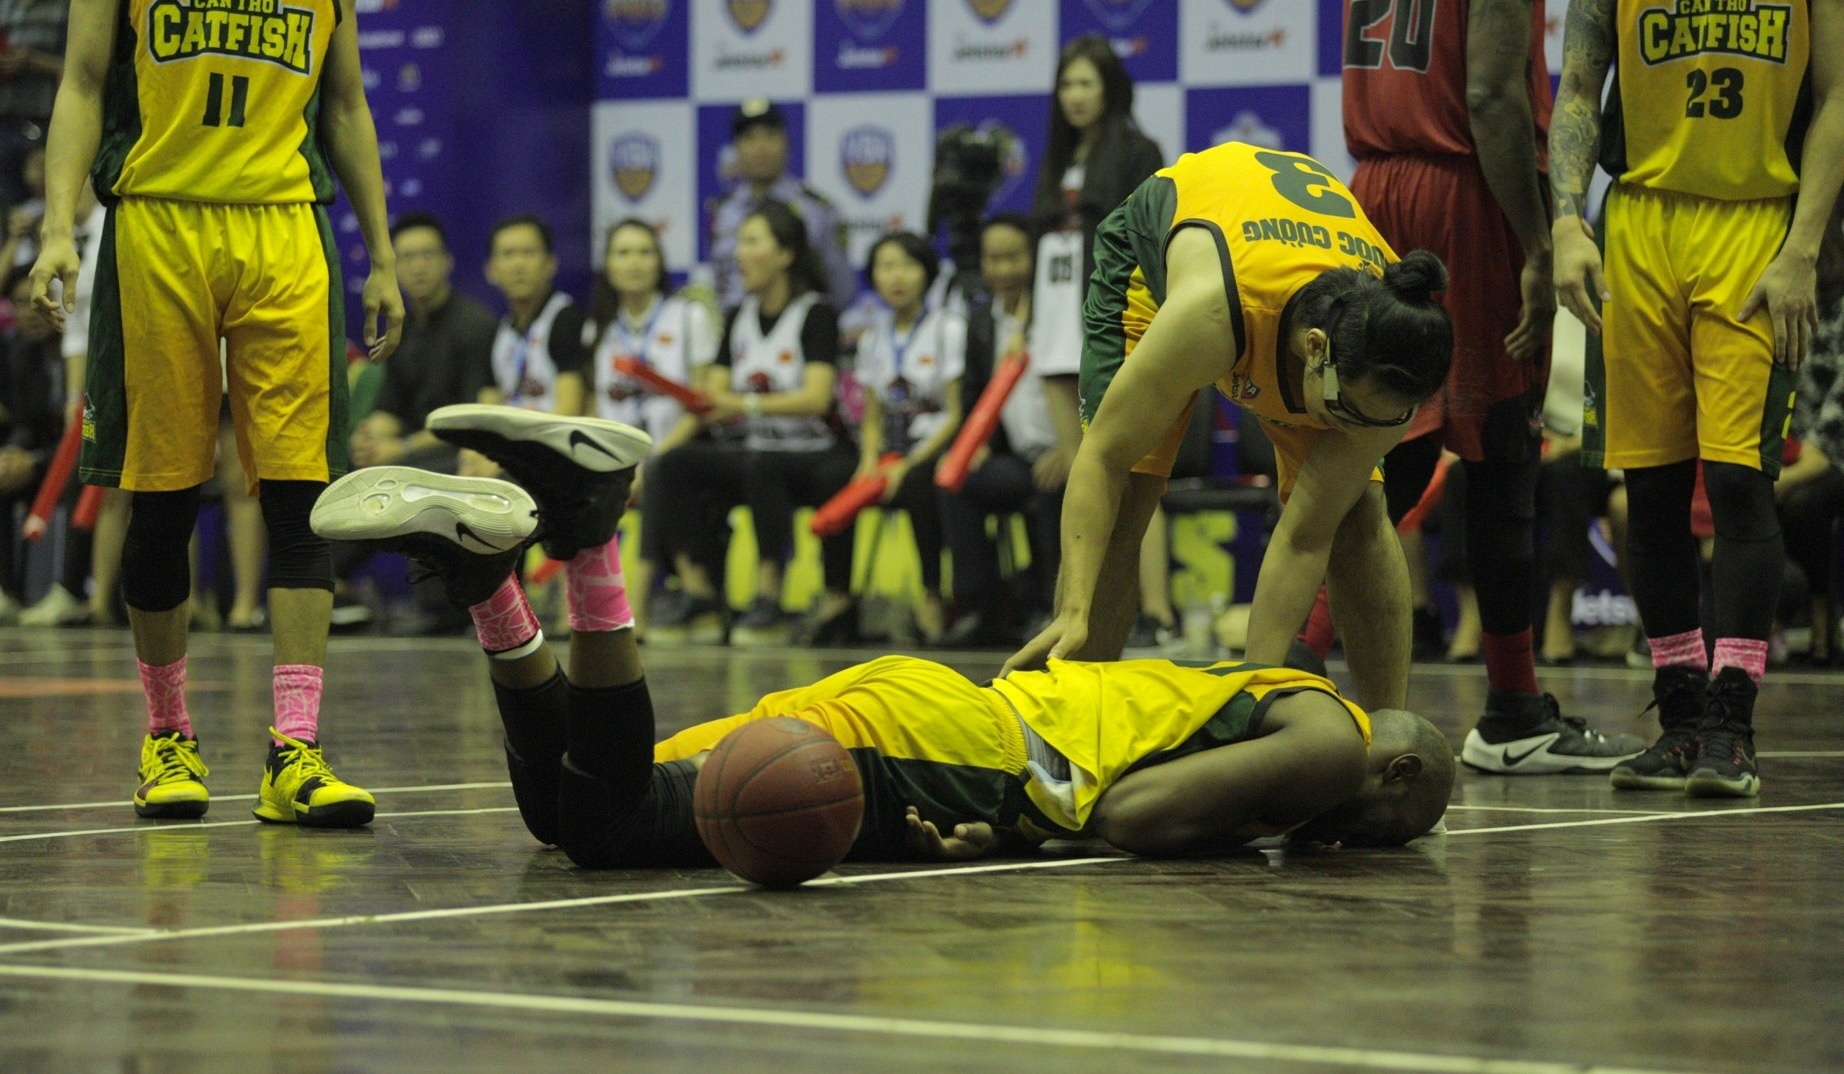 Thanglong Warriors vs Cantho Catfish anh 31